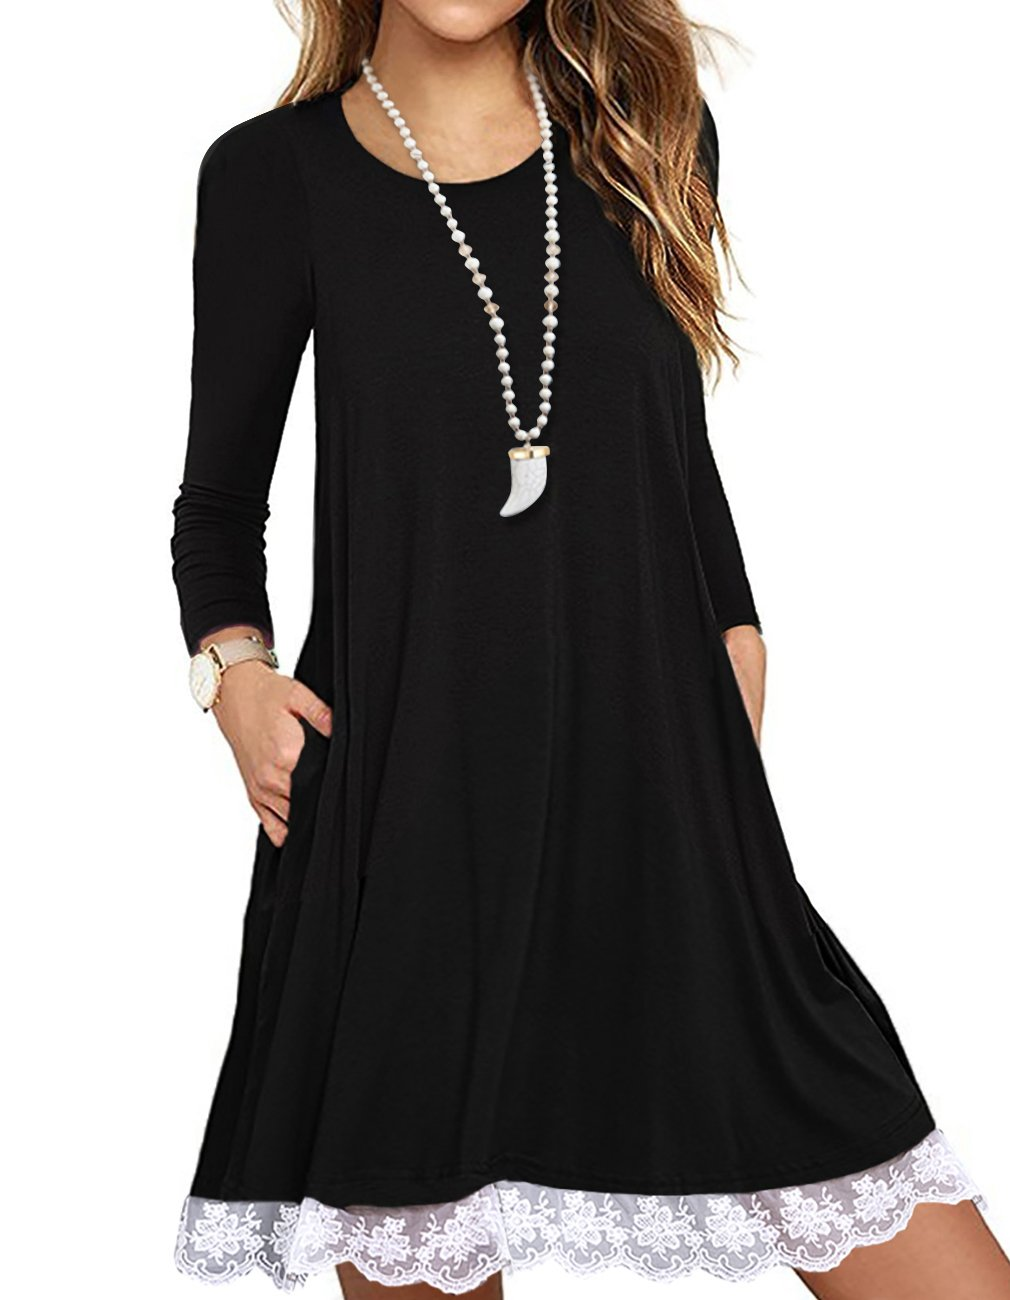 Sanifer Women's Long Sleeve Cotton Lace T Shirt Dress with Pockets (X-Large, Black)